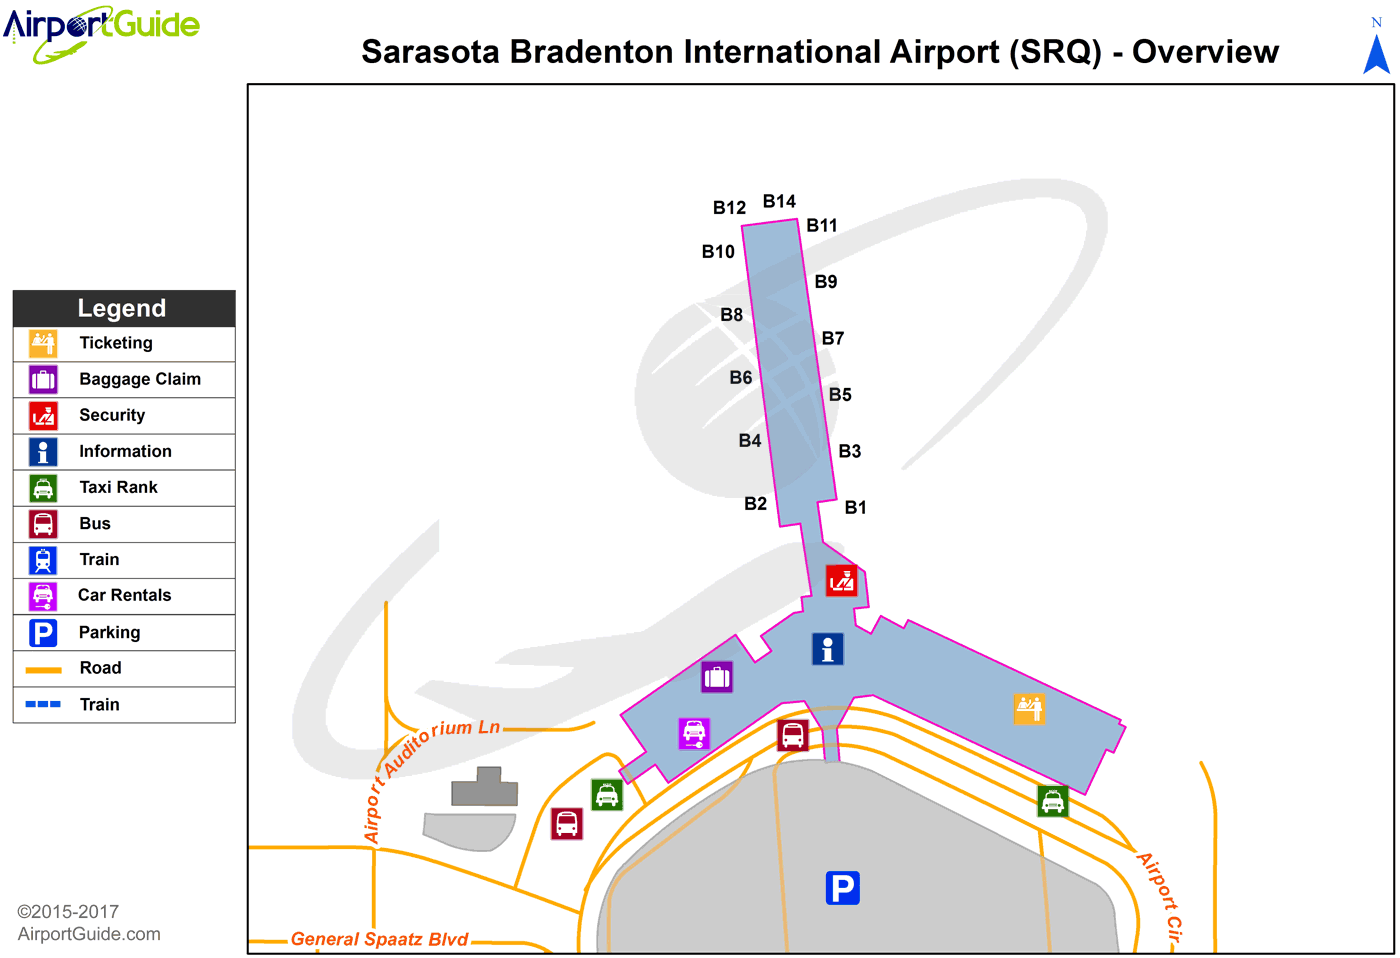 Sarasota/Bradenton - Sarasota/Bradenton International (SRQ) Airport Terminal Map - Overview